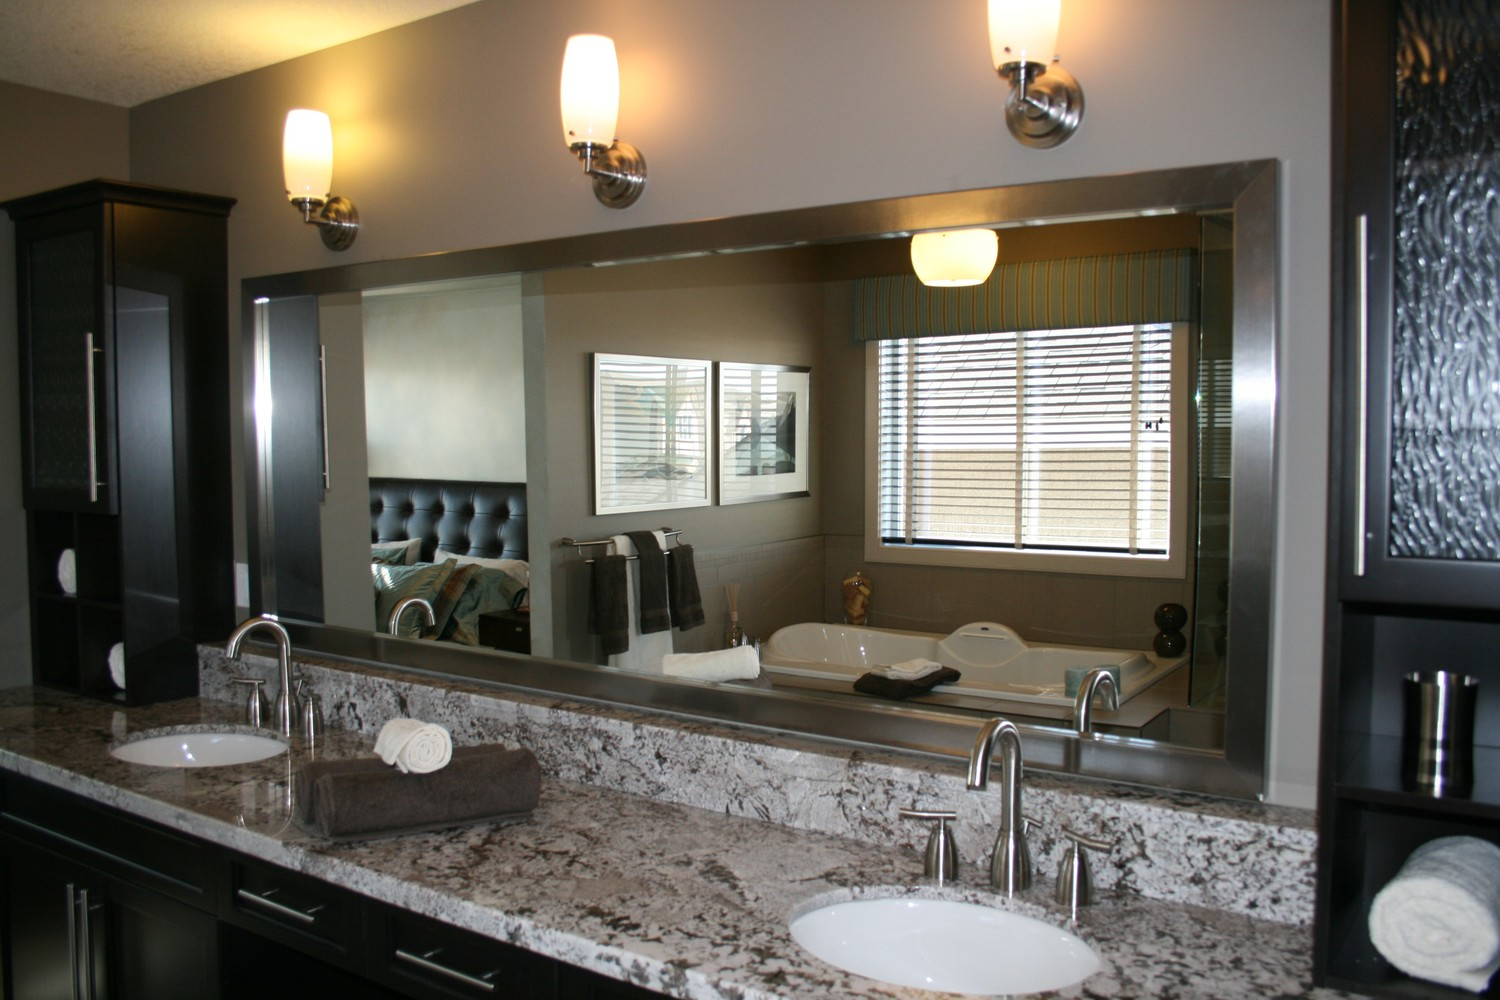 mirrors  stamford shower glass and mirror, Home decor